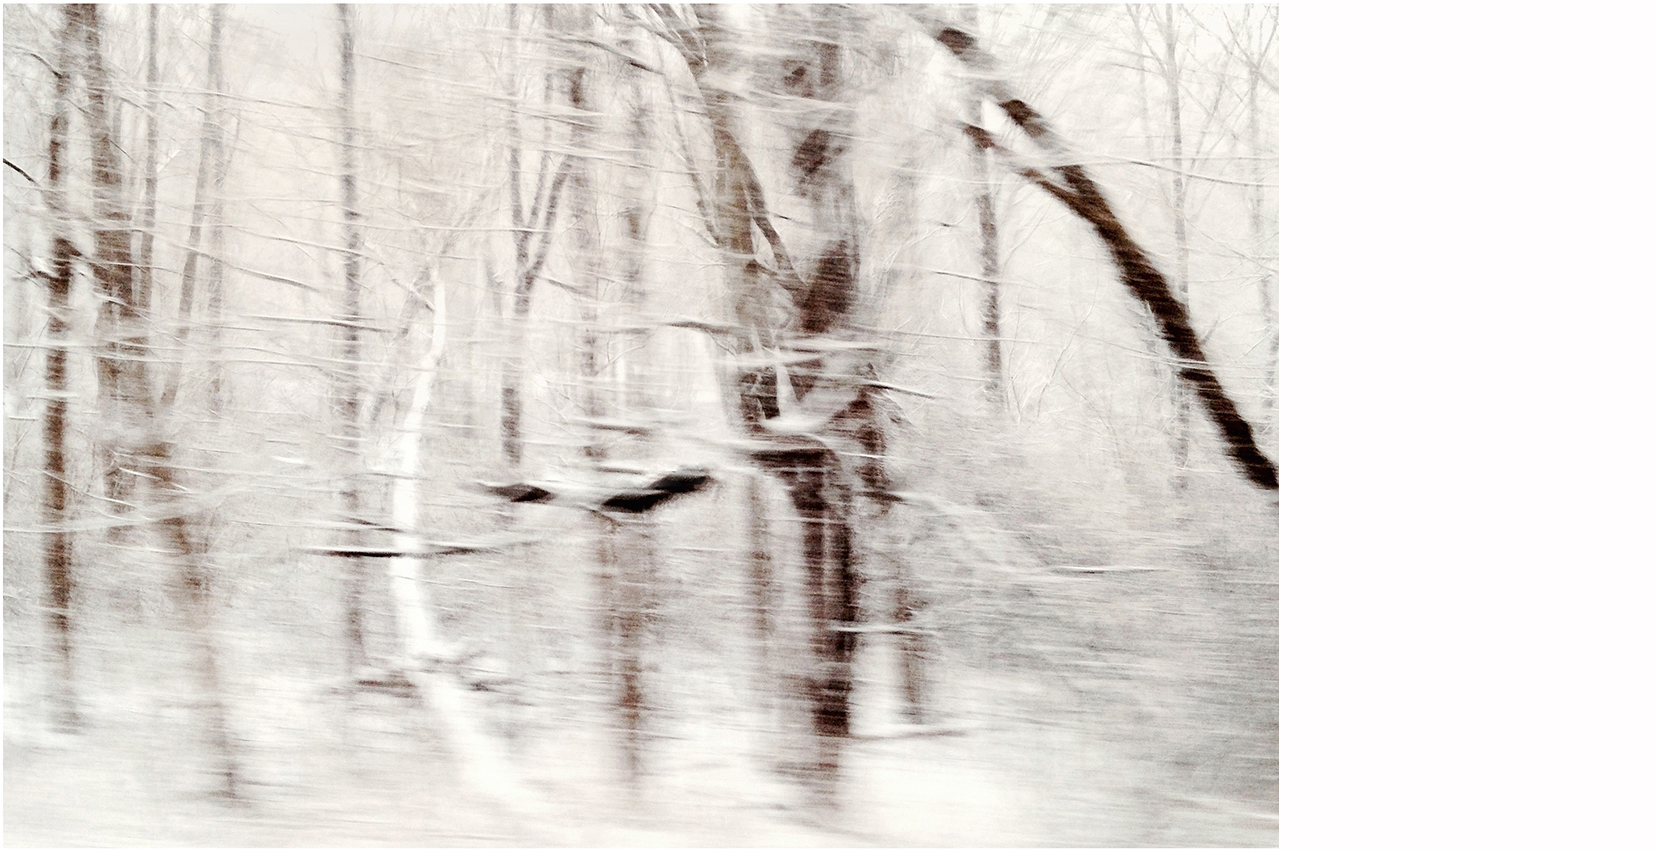 "Winterscape #10   Archival Pigment on Hahnemuhle German Etching Paper Rising Museum Acid Free Mounting Board Acrylite Non -glare UV Filtering Plexi Glass Custom White Oak Frame 29 x 34"" including a 6"" white mat border   $950"